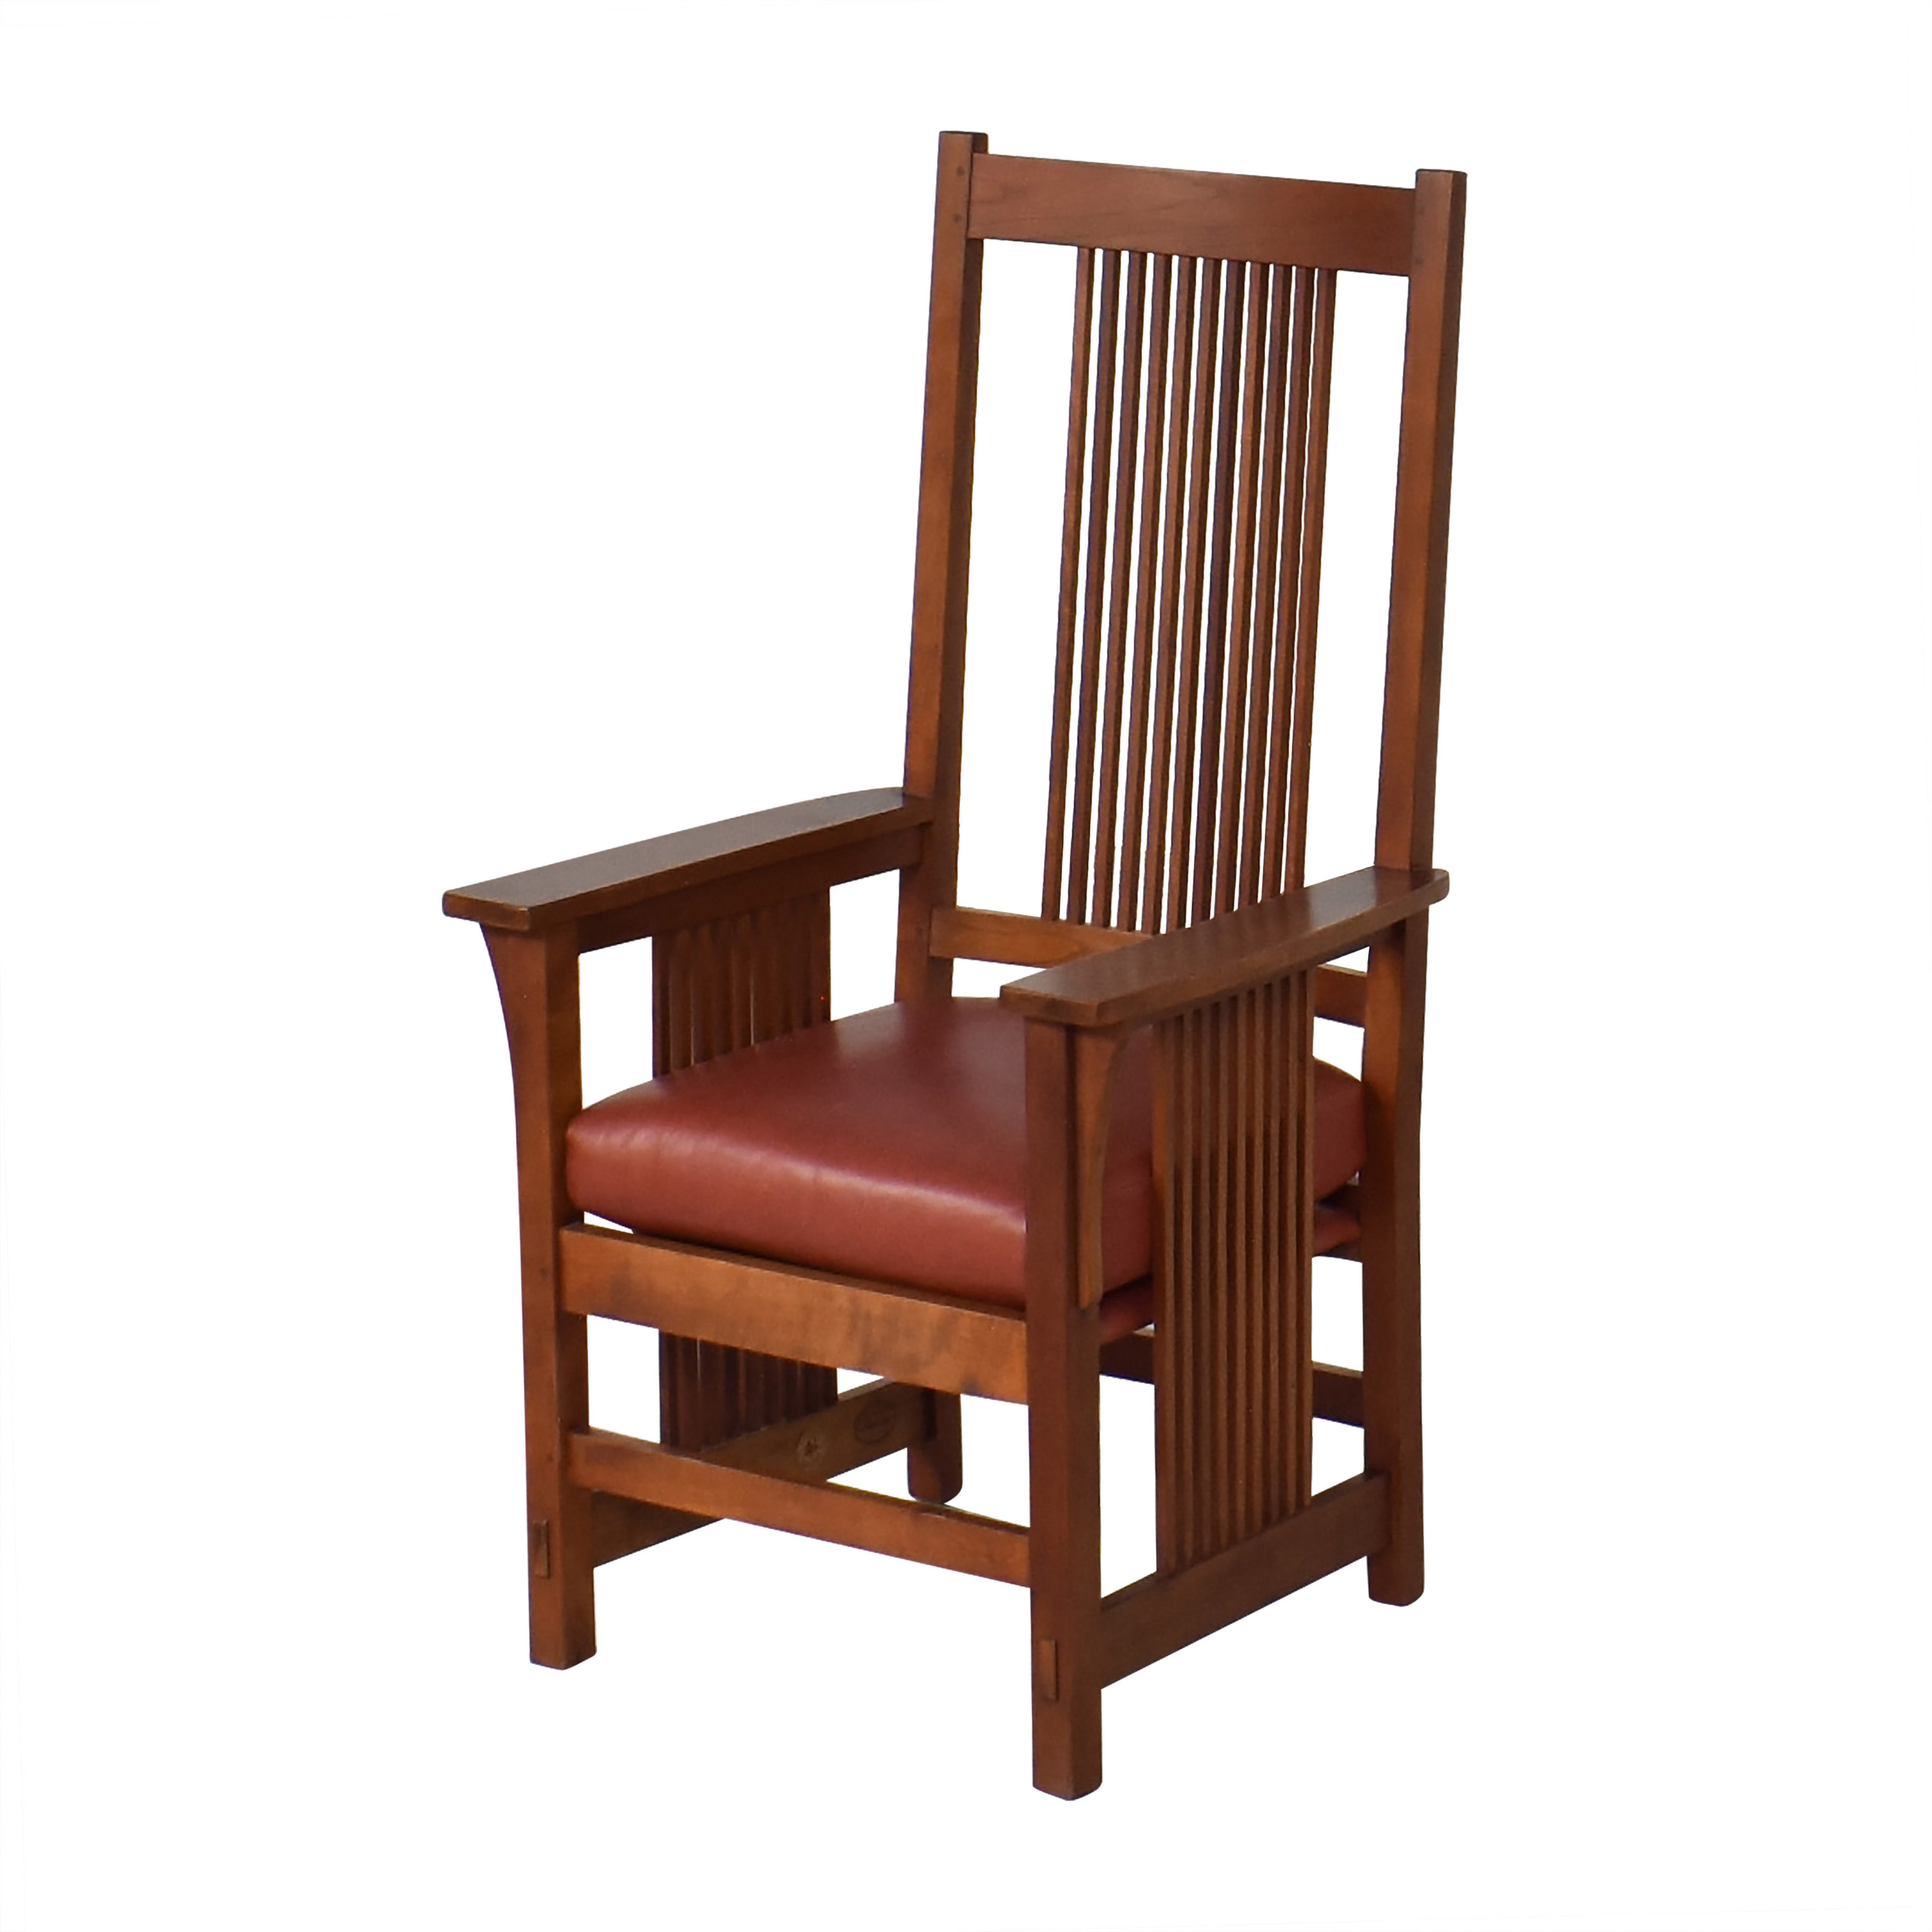 Stickley Furniture Stickley Spindle Dining Arm Chairs ct